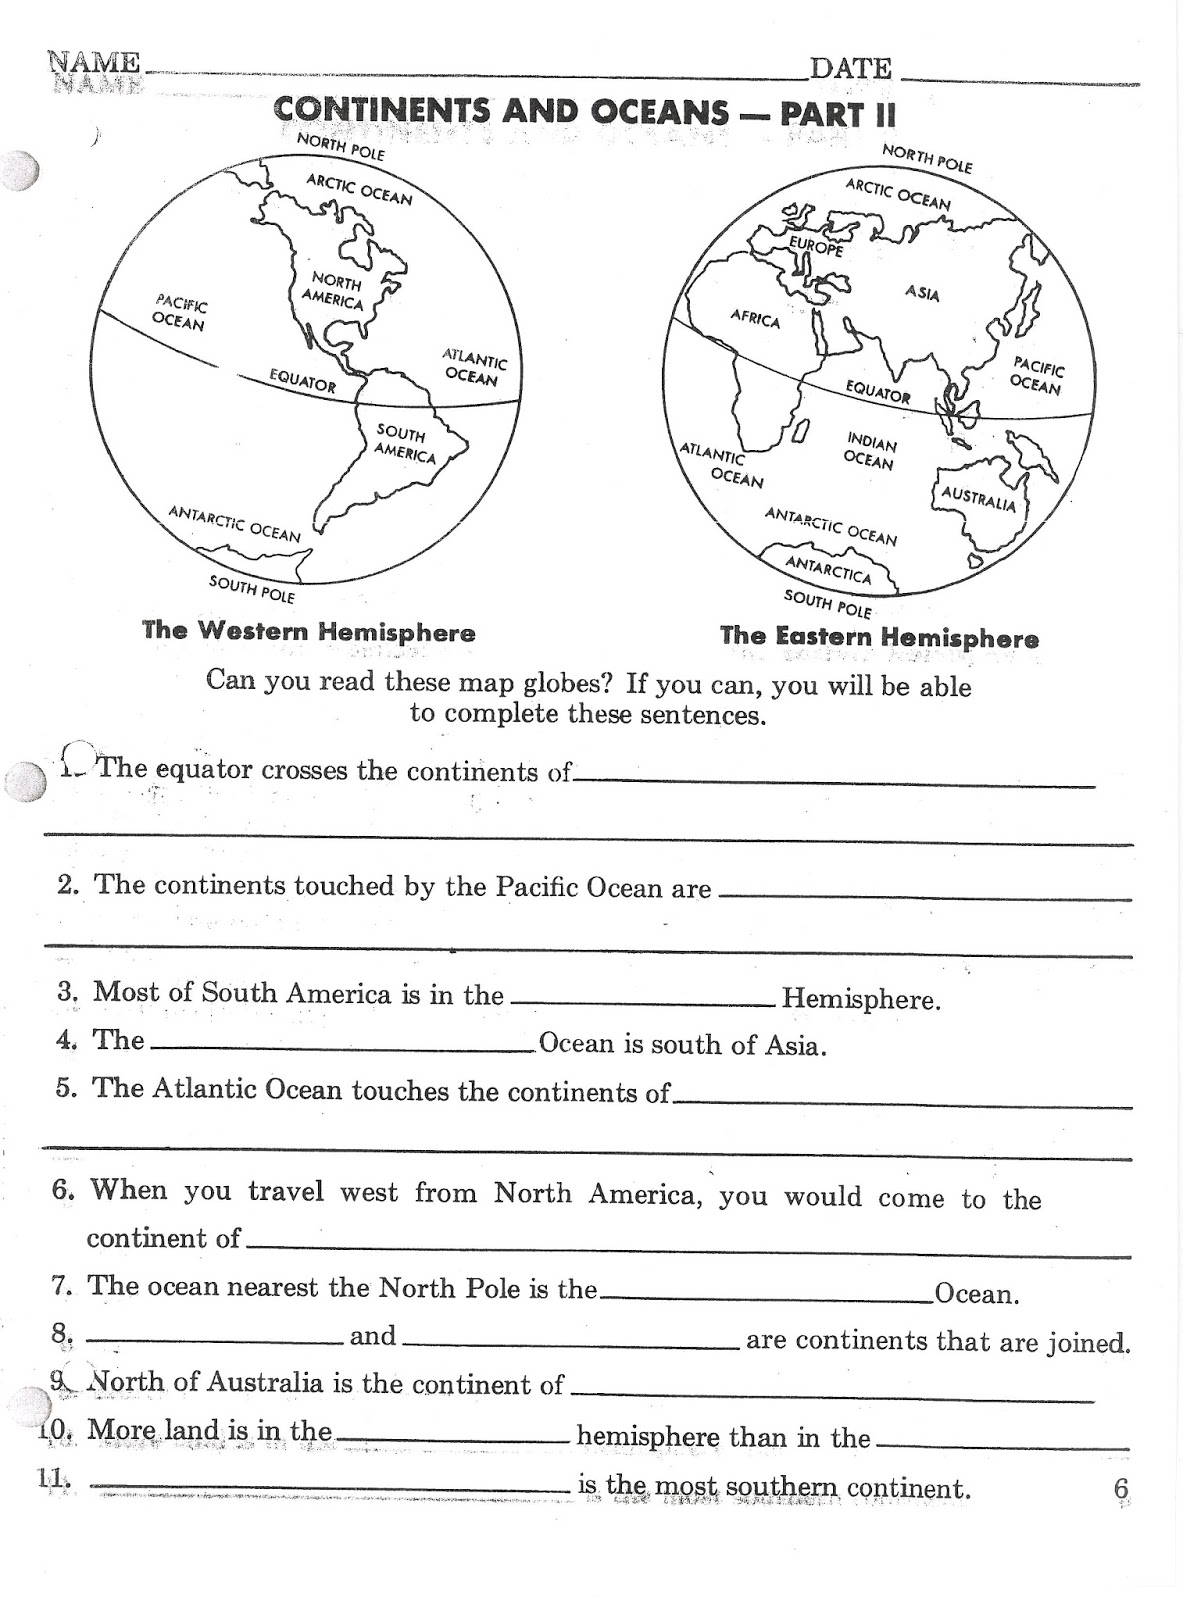 This is an image of Gorgeous Free Printable Continents and Oceans Quiz